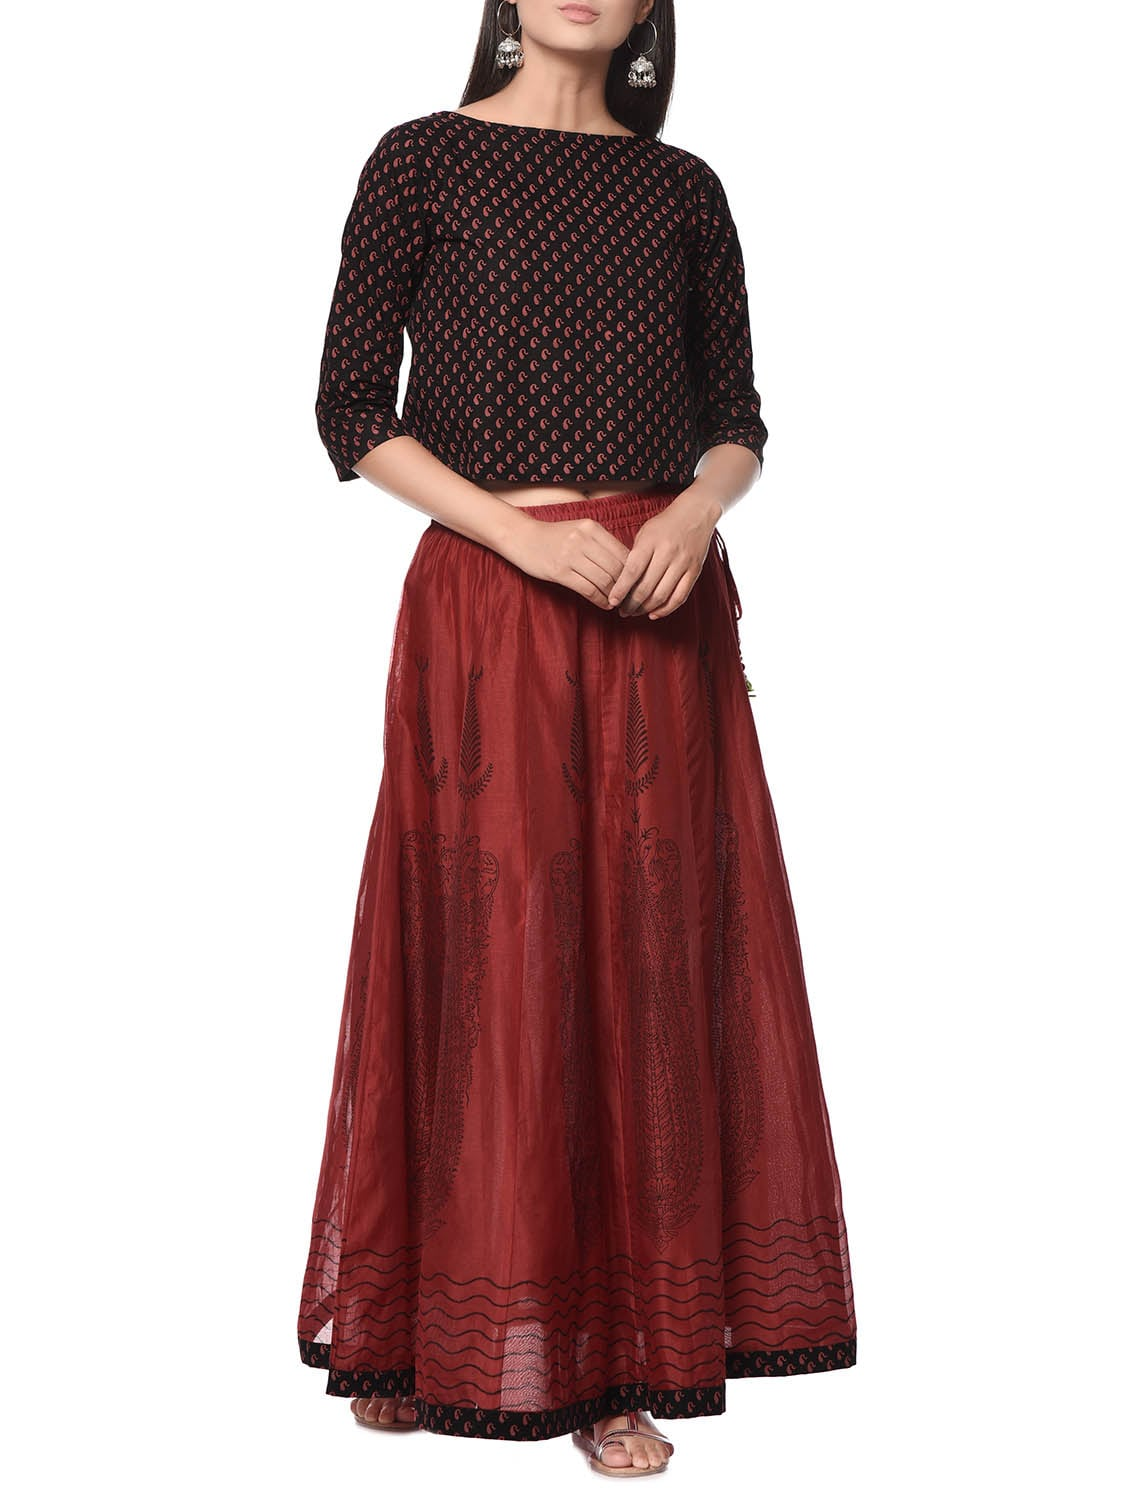 7d9cfb0c484 Red And Black Chanderi Silk Skirt And Top Set